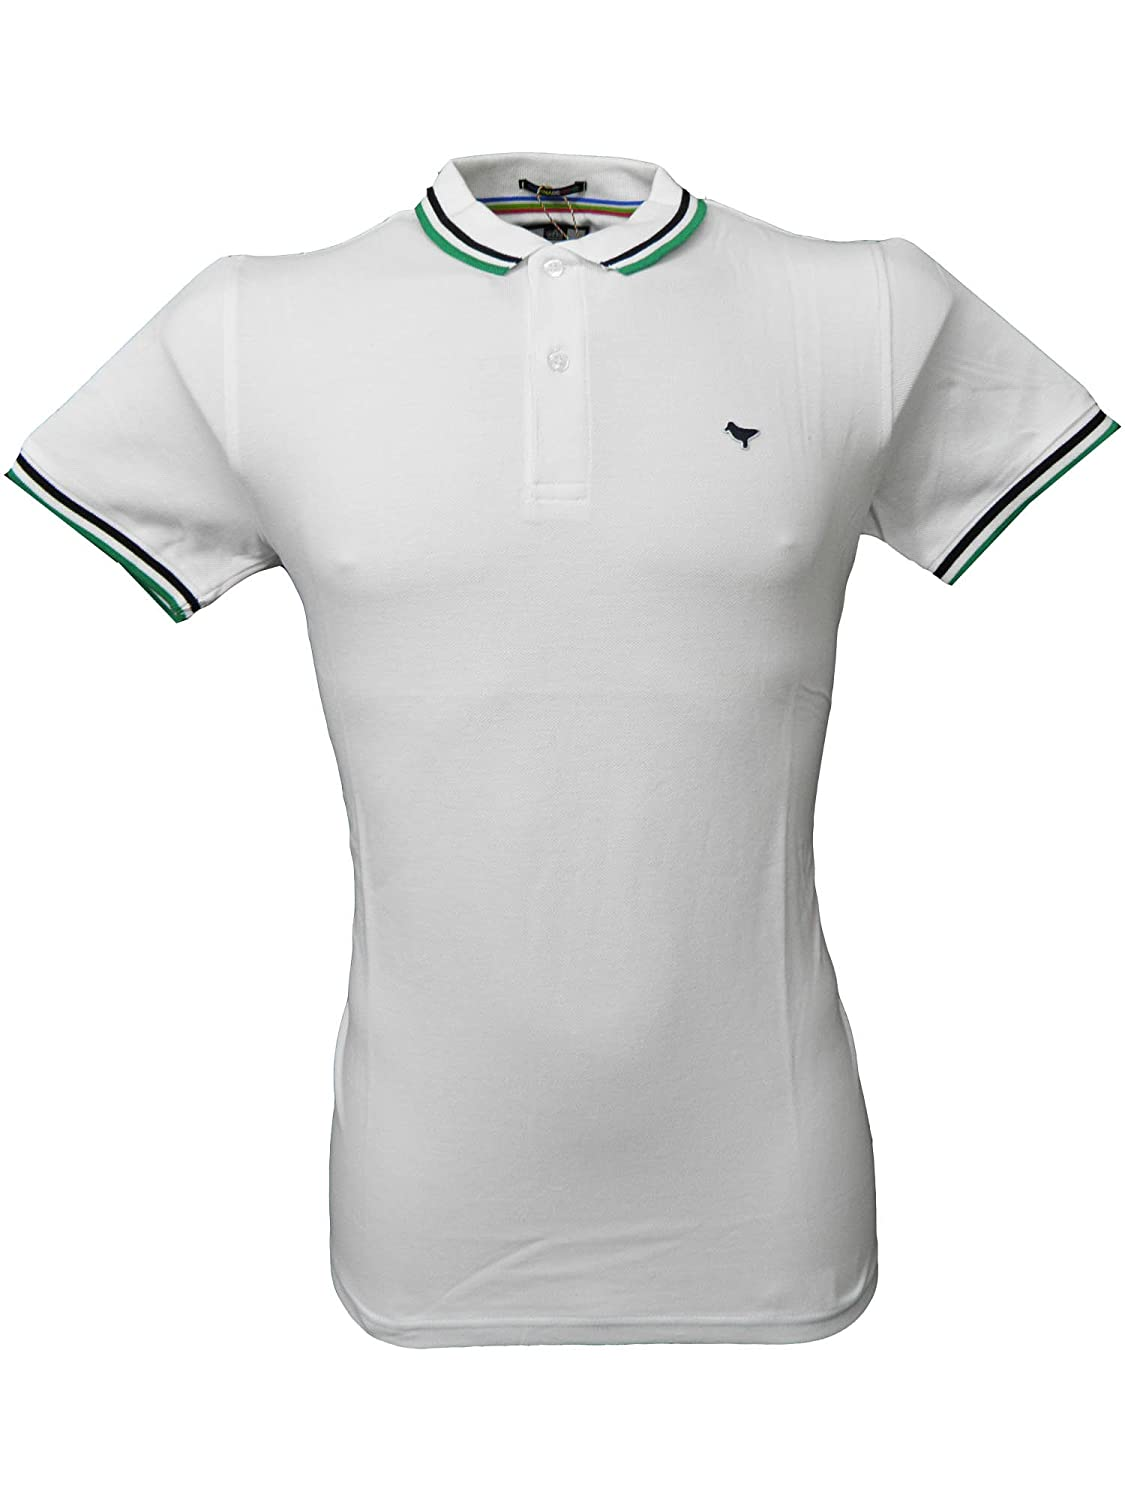 Weekend Offender - Camiseta de Polo para Hombre en Color Blanco ...